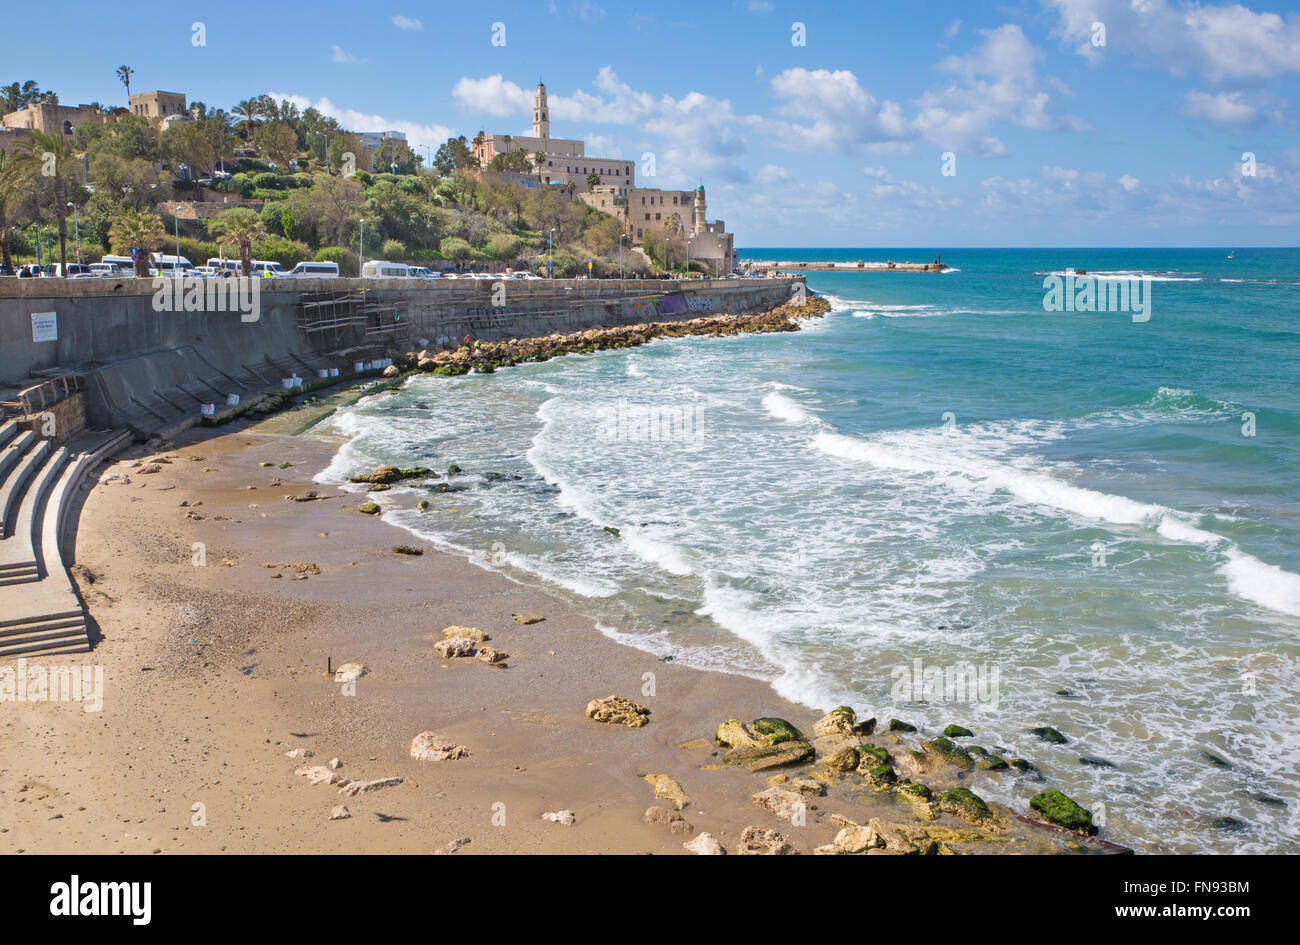 TEL AVIV, ISRAEL - MARCH 2, 2015: The waterfront and beach under old Jaffa in Tel Aviv - Stock Image